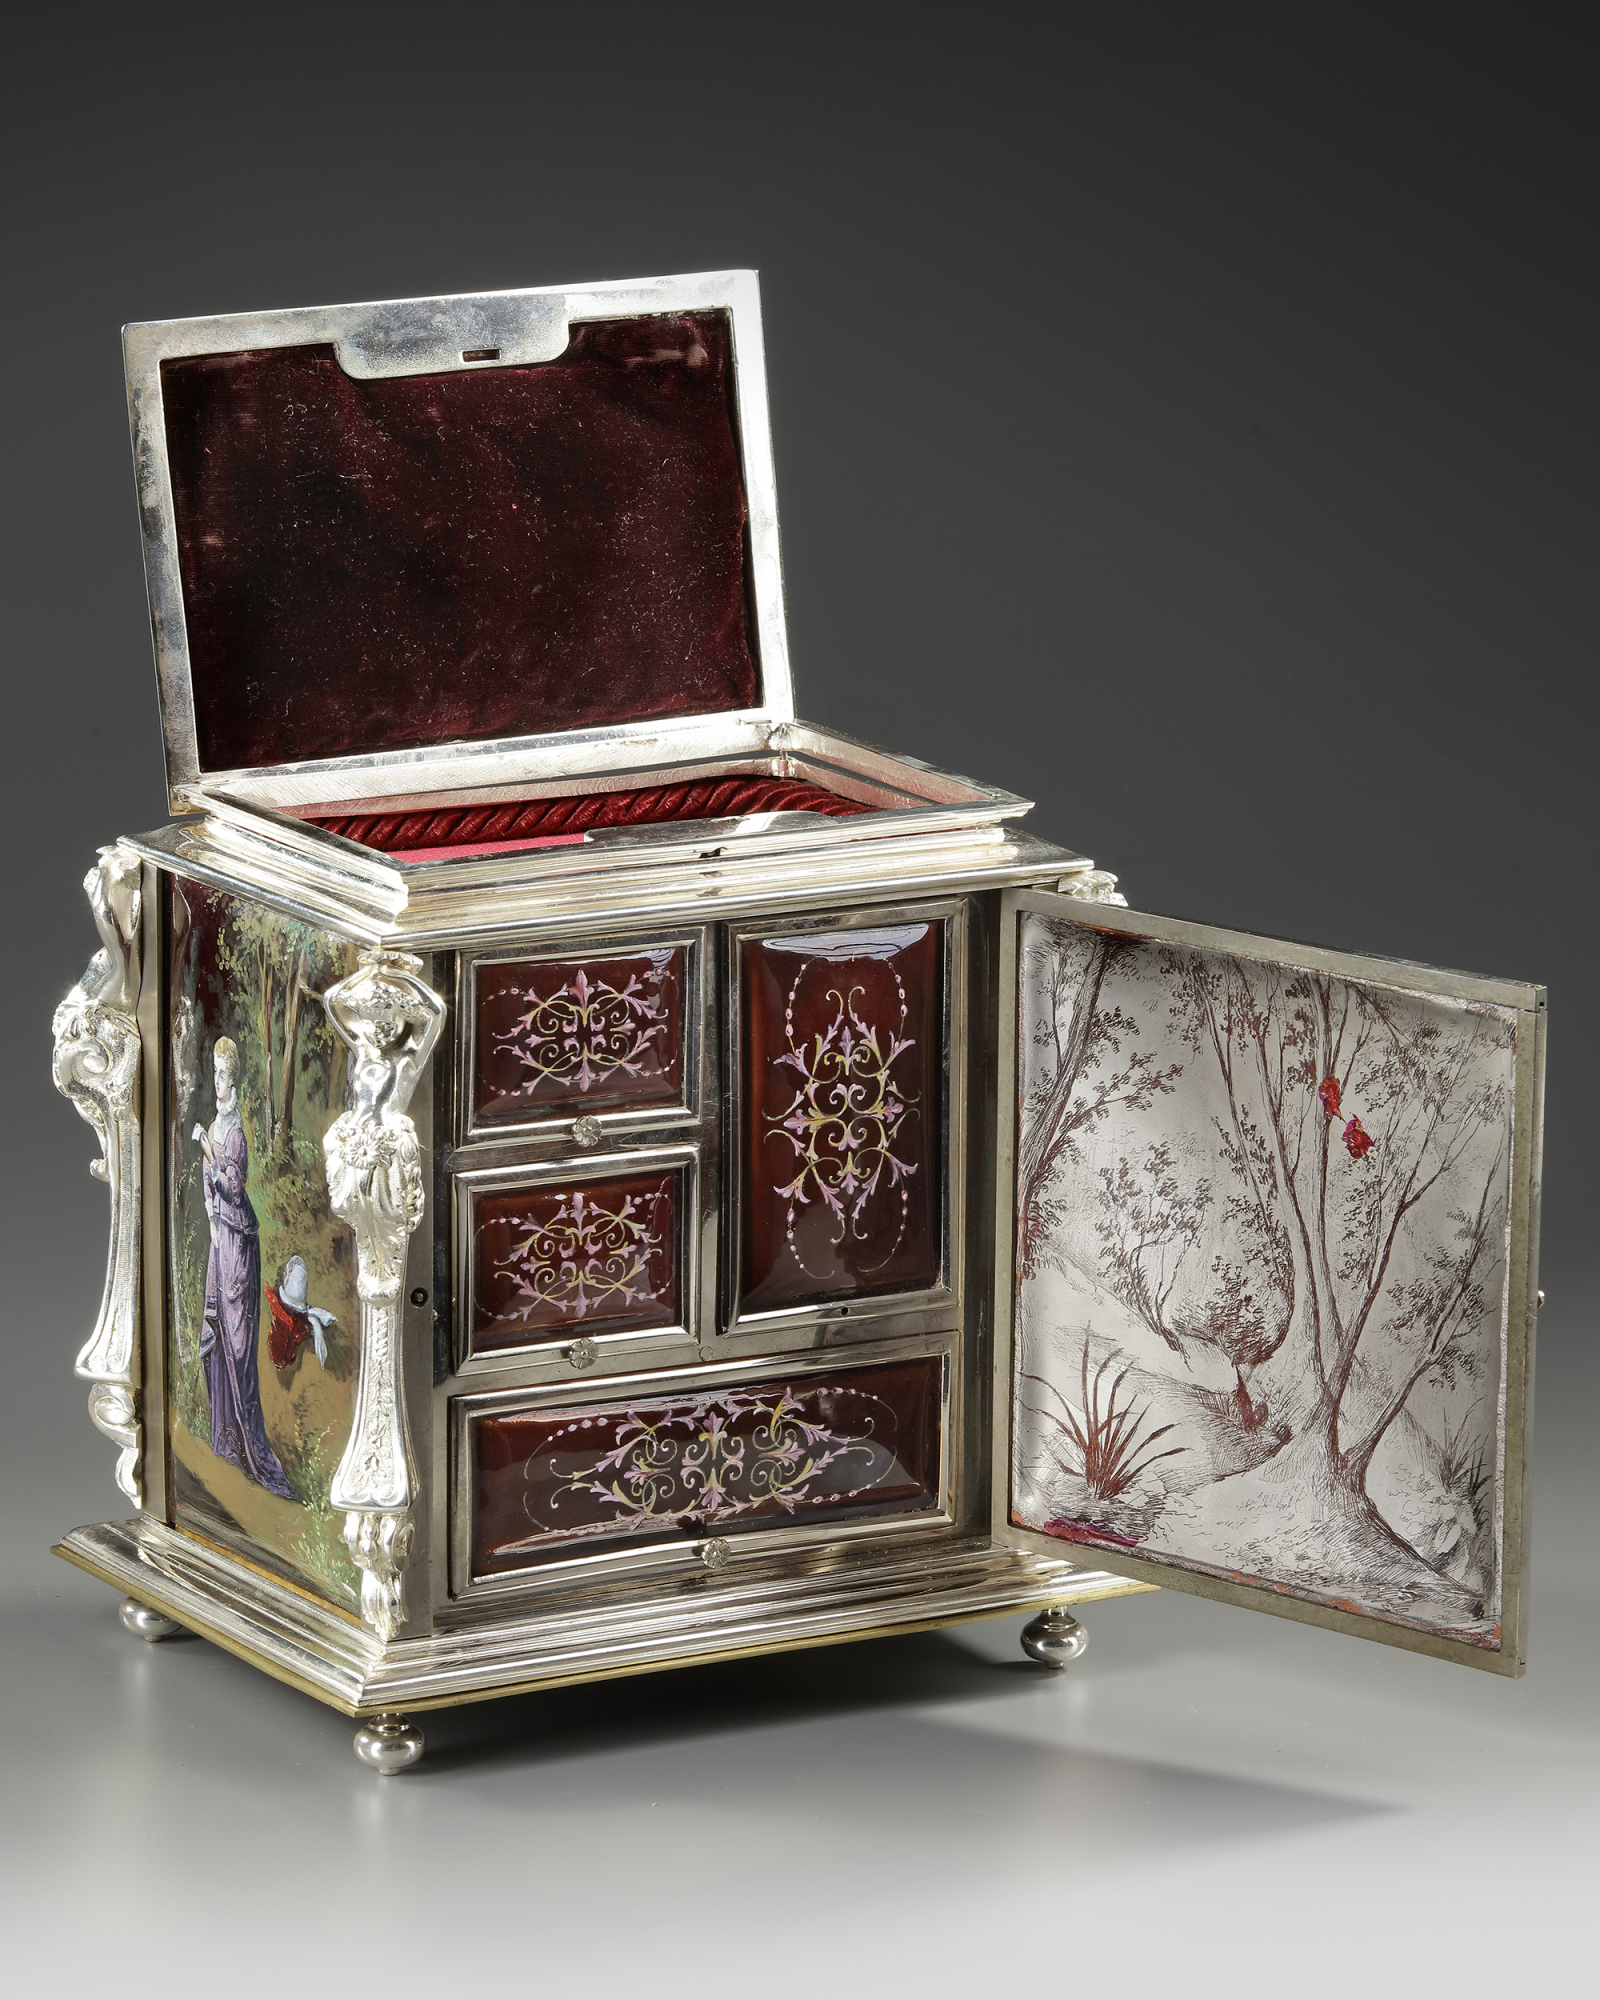 A JEWELRY BOX, FRANCE, LATE 19TH CENTURY - Image 4 of 5